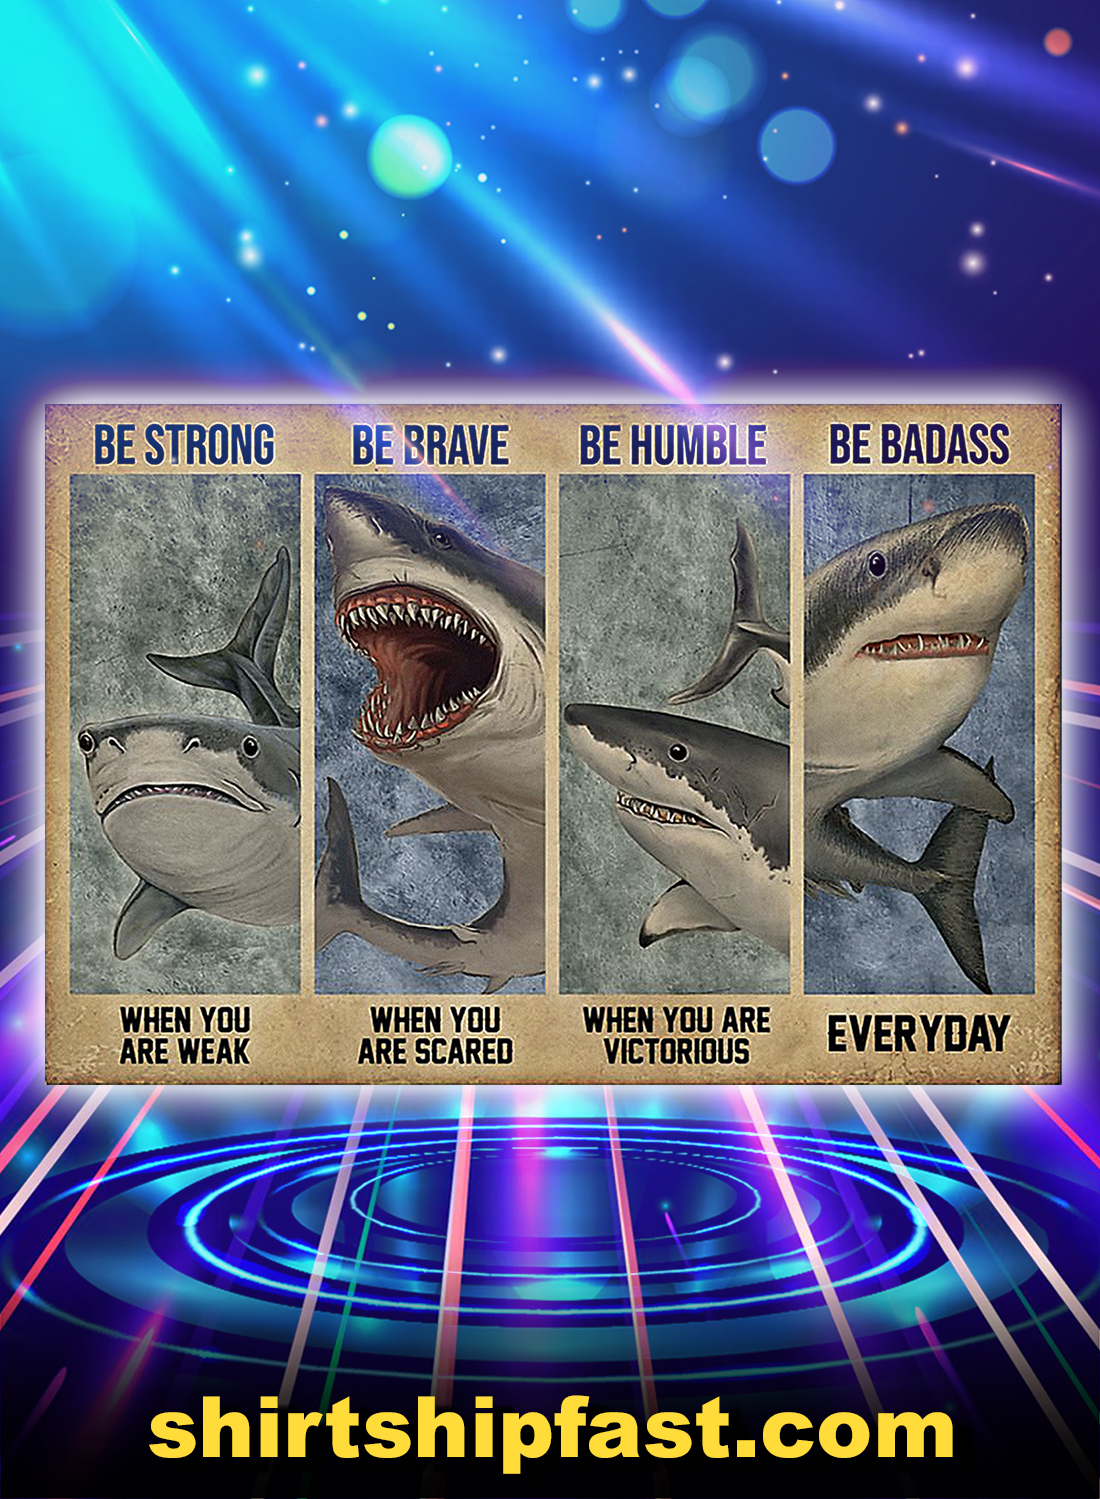 Shark be strong be brave be humble be badass poster